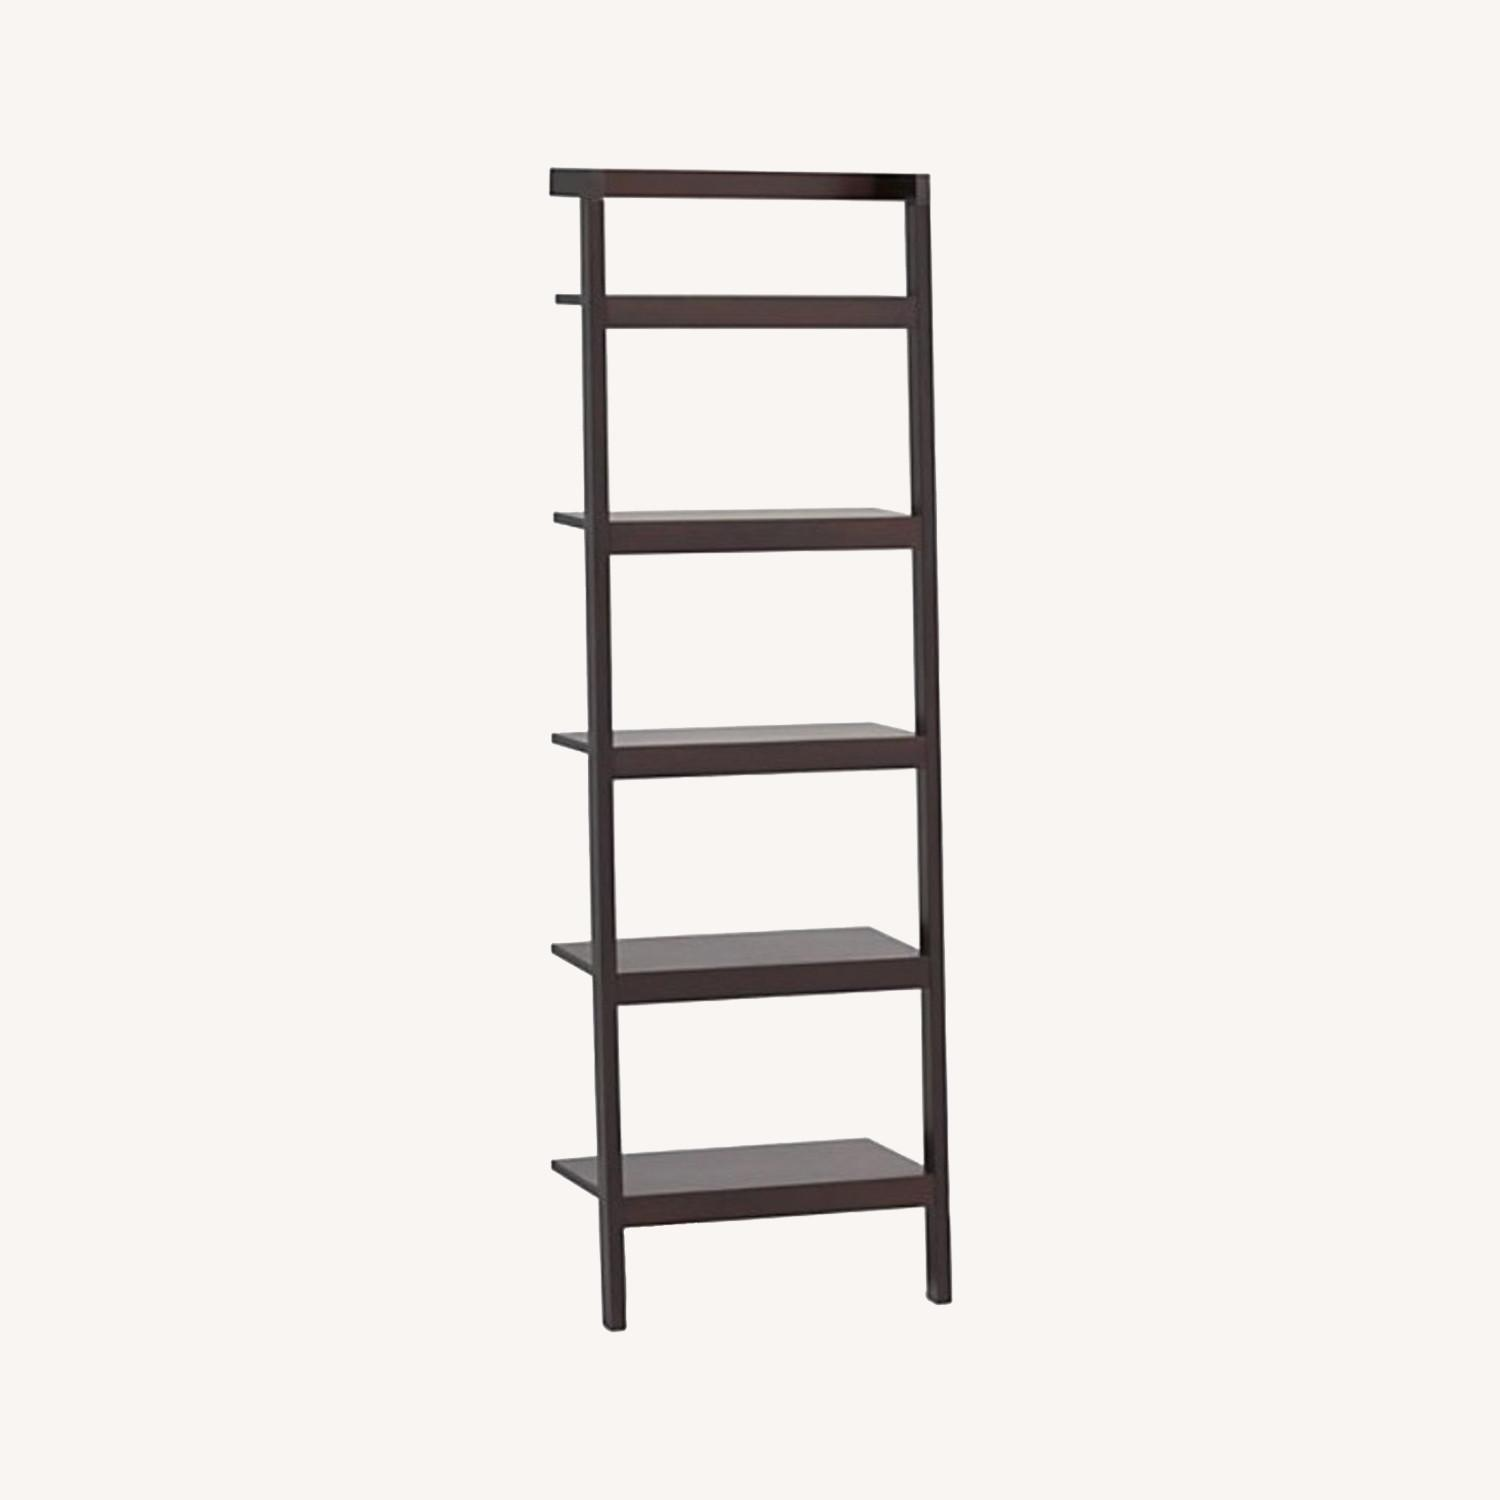 Crate & Barrel Sawyer Mocha Leaning Bookcase - image-0